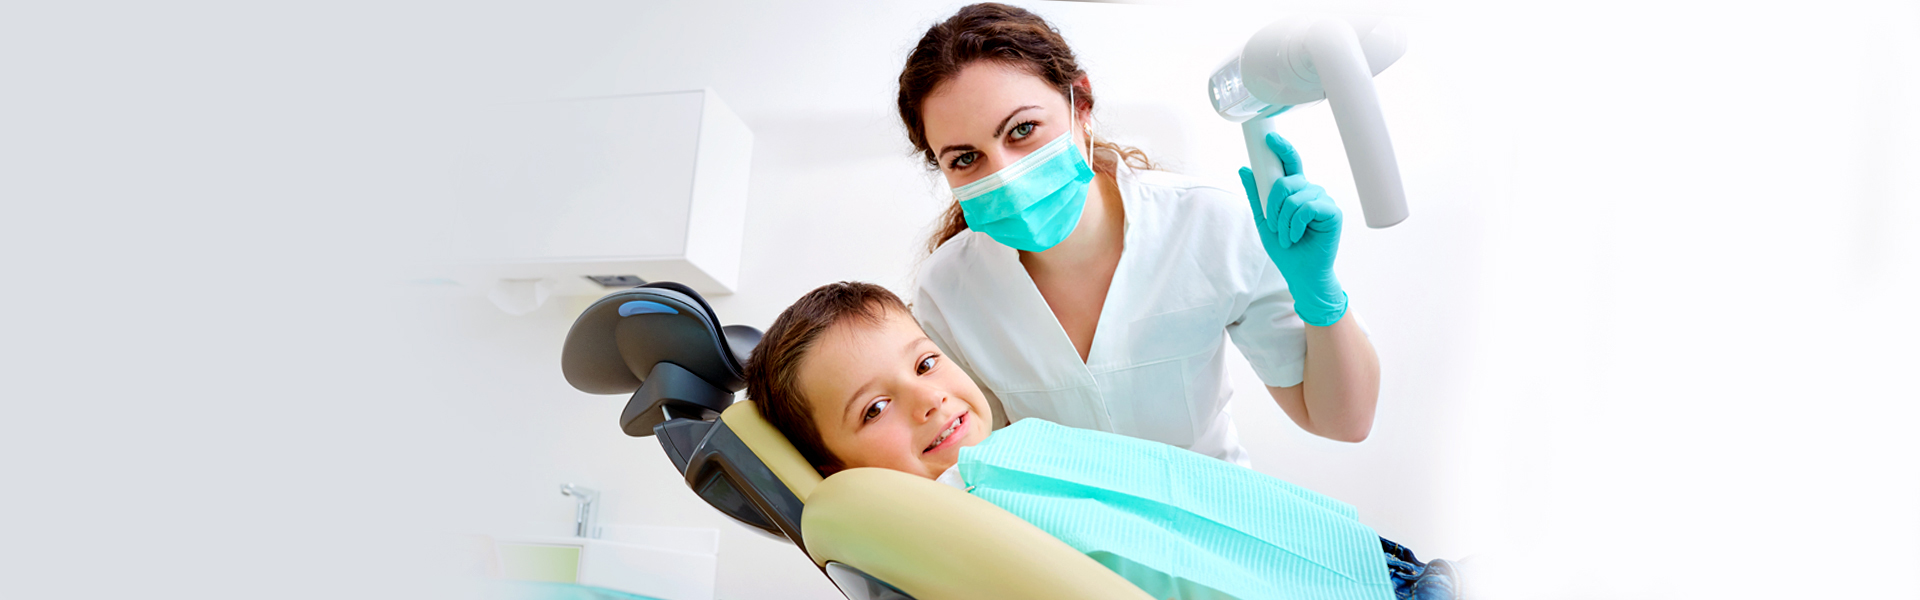 All About Dental Sealants: Basic Types and Incredible Benefits